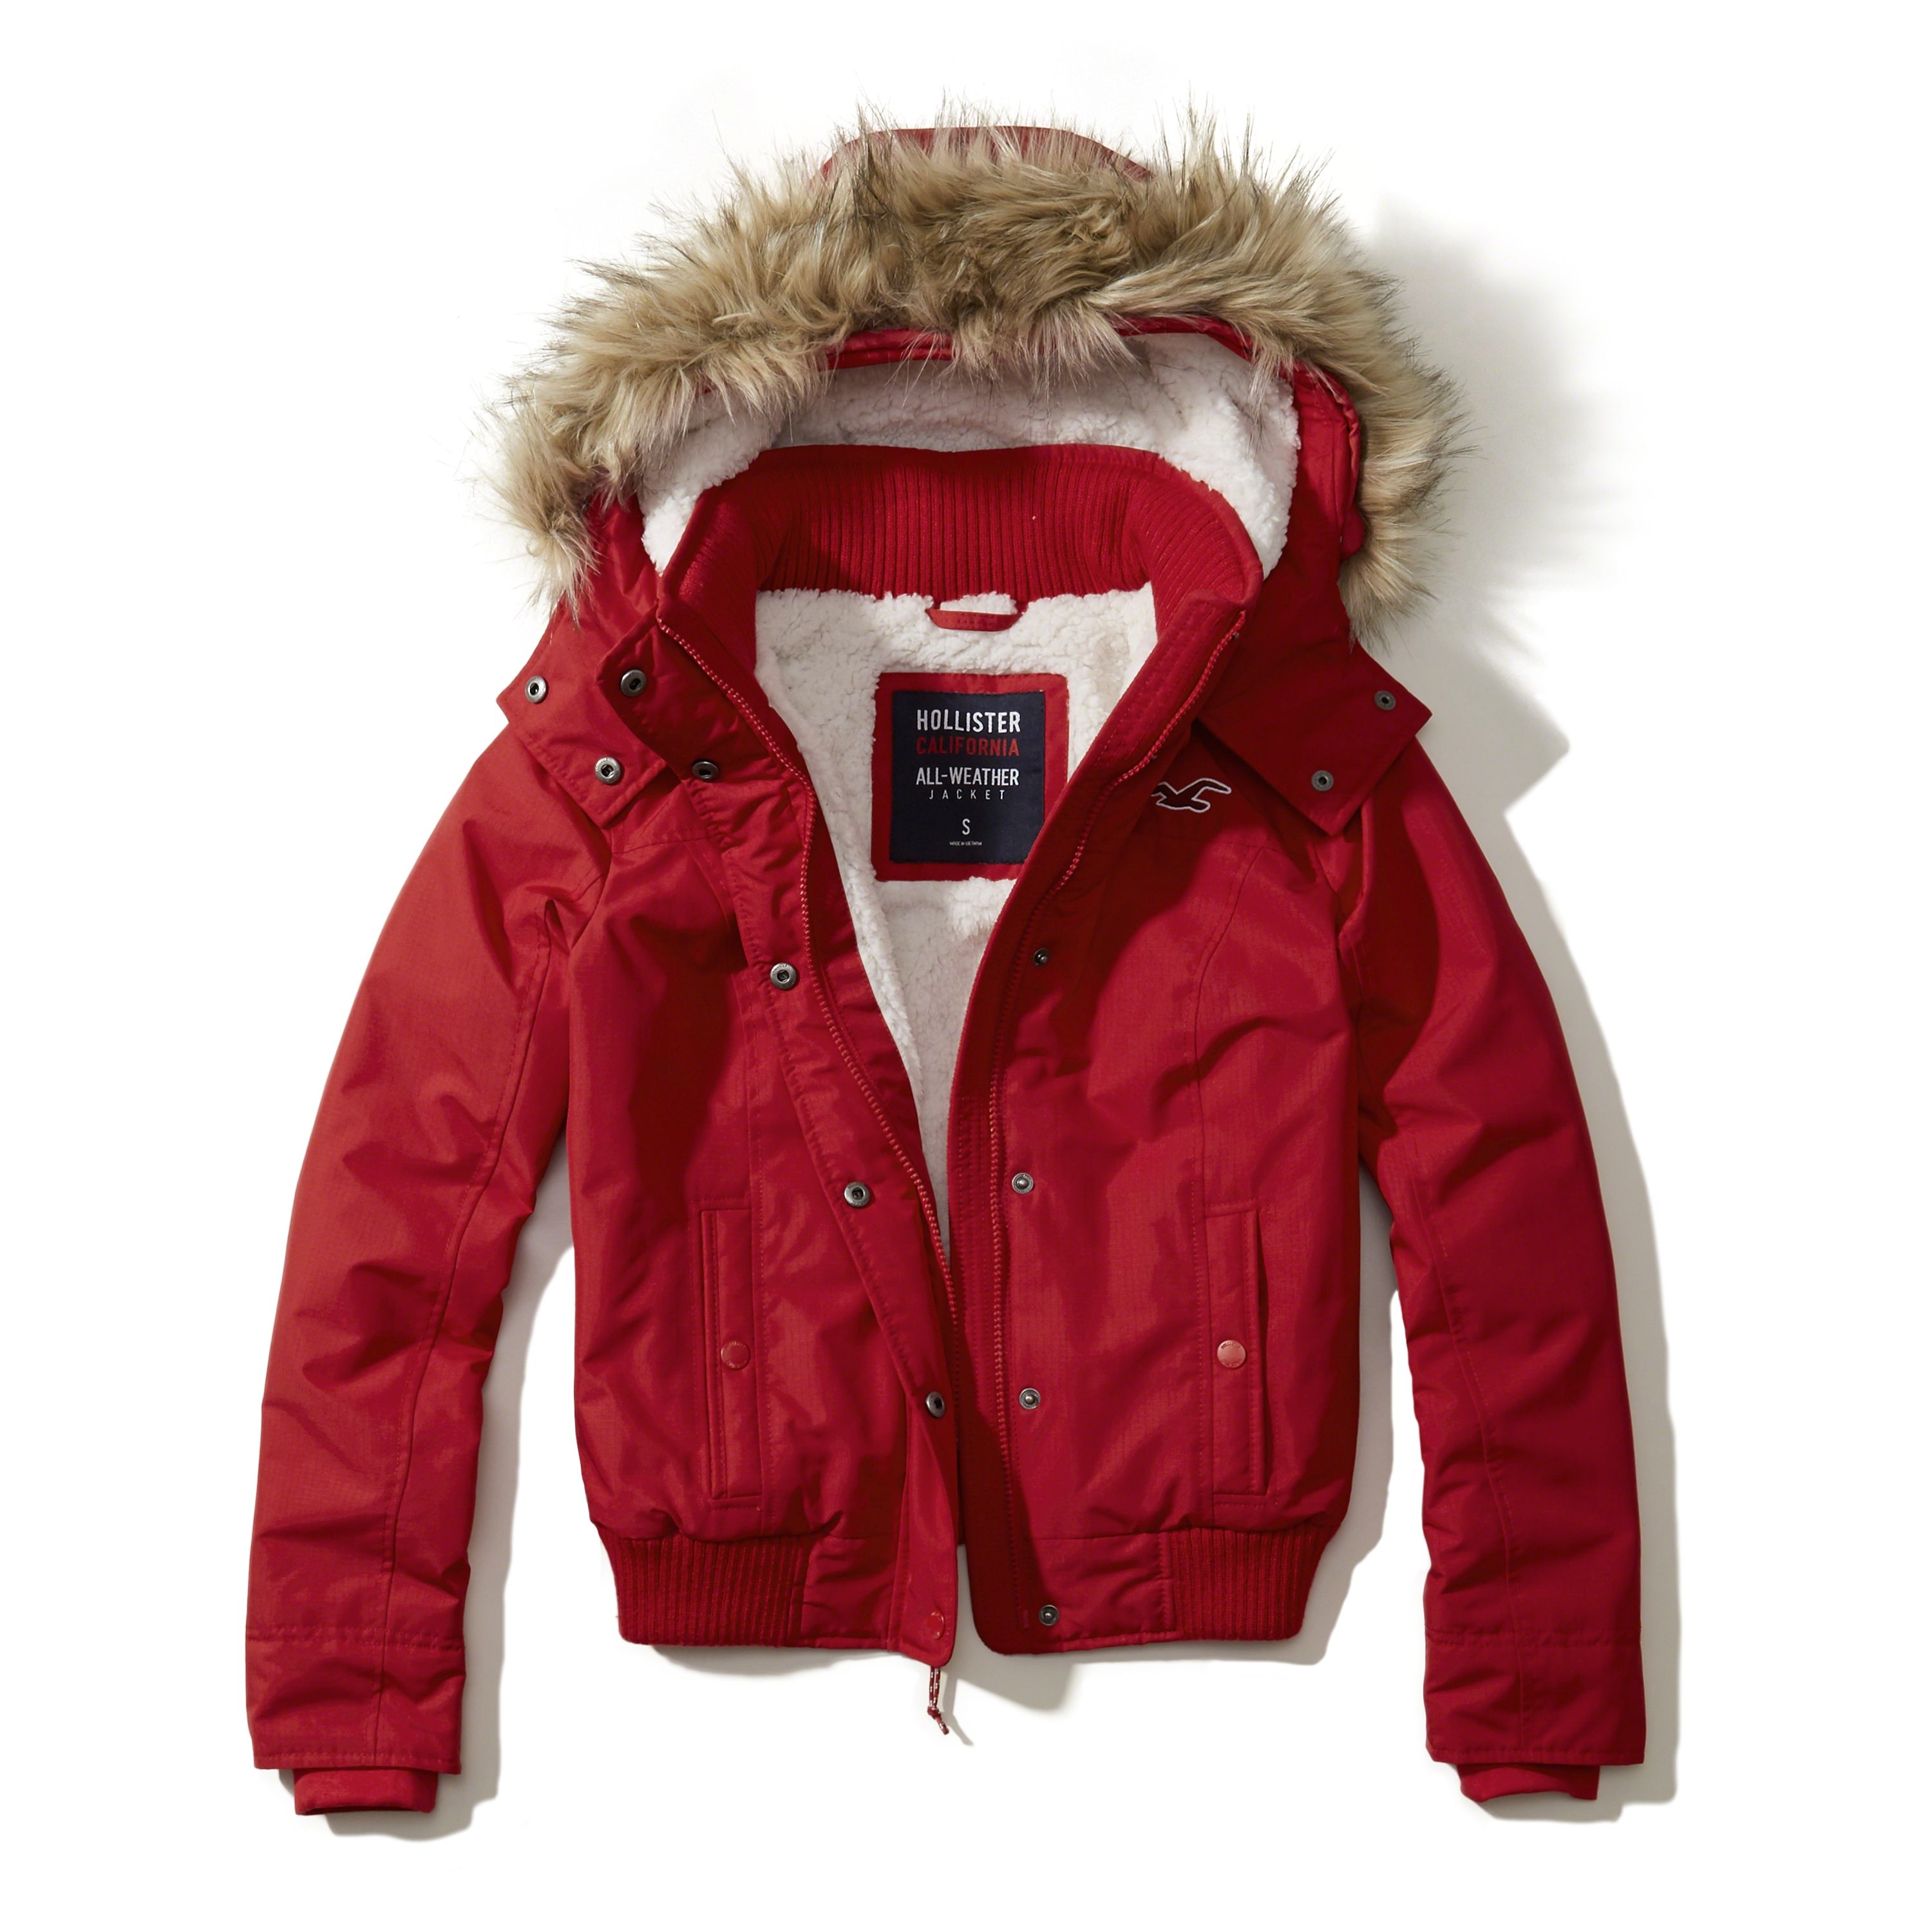 Pin By Cody Casey On Hollister Jackets Red Hooded Jacket Hollister Jacket Red Bomber Jacket [ 3000 x 3000 Pixel ]